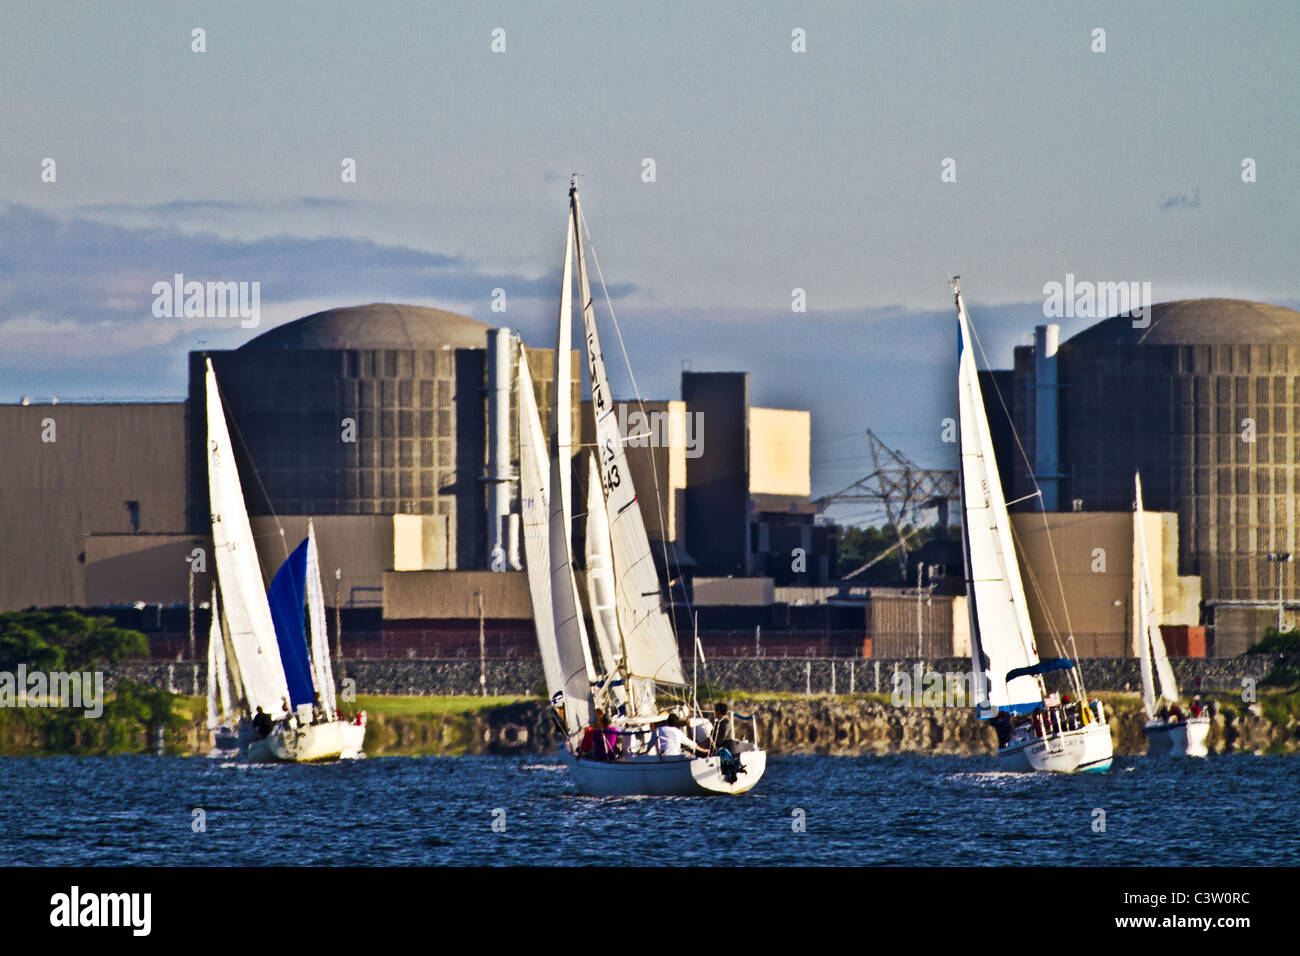 Sail Boats Racing in front of nuclear power station - Stock Image